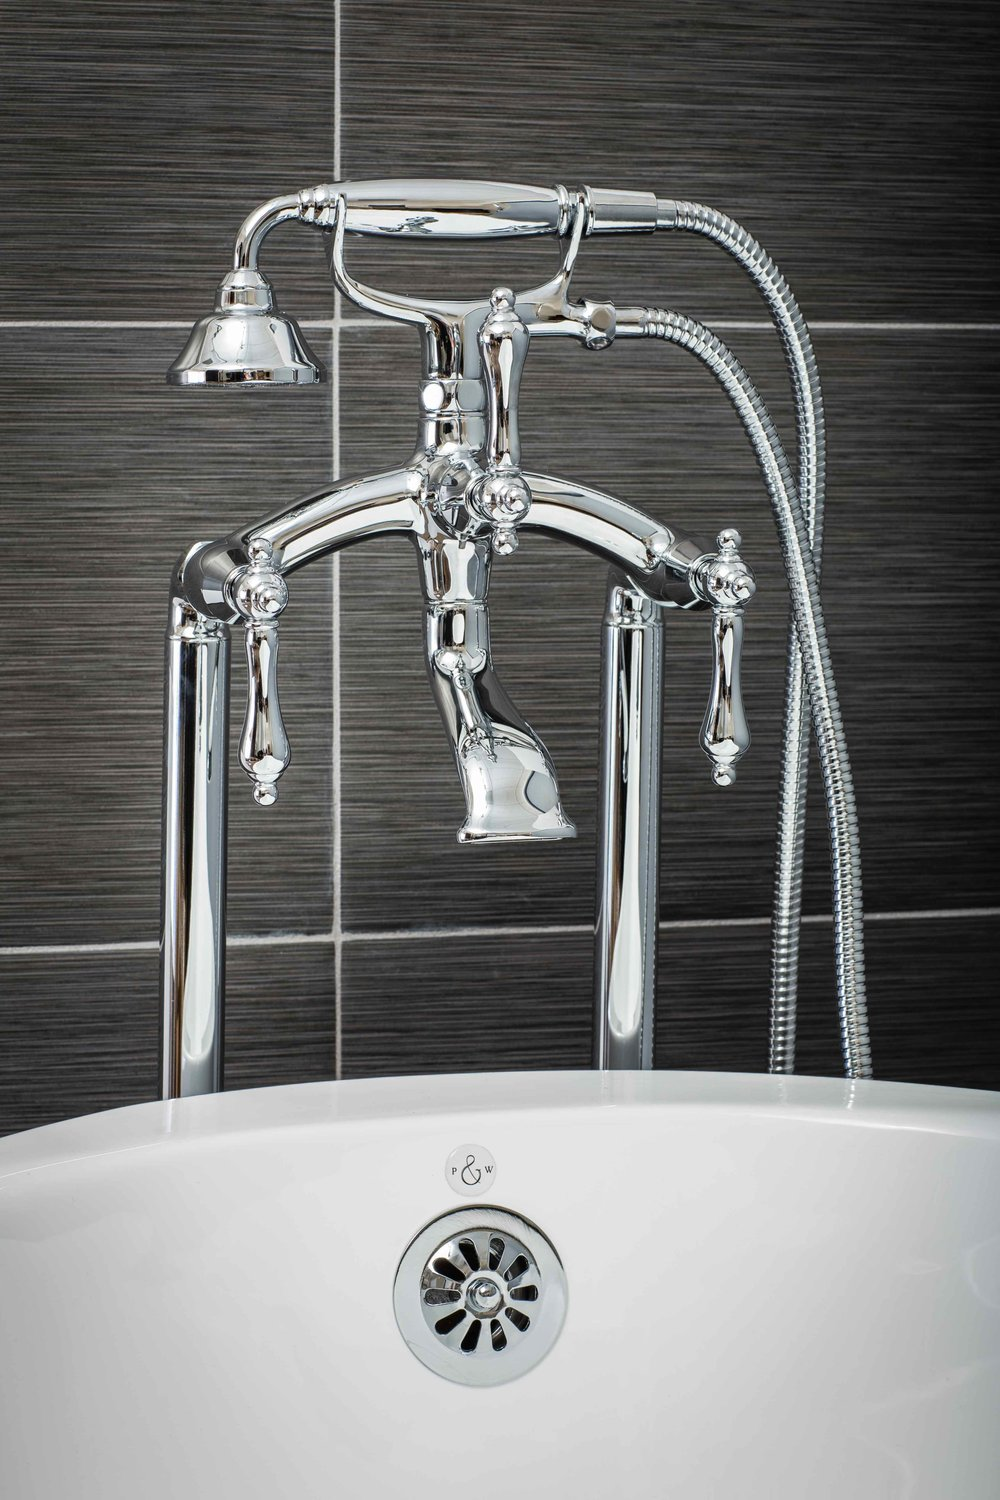 Vintage Floor Mount Tub Filler Faucet in Chrome with Levers — Pelham ...